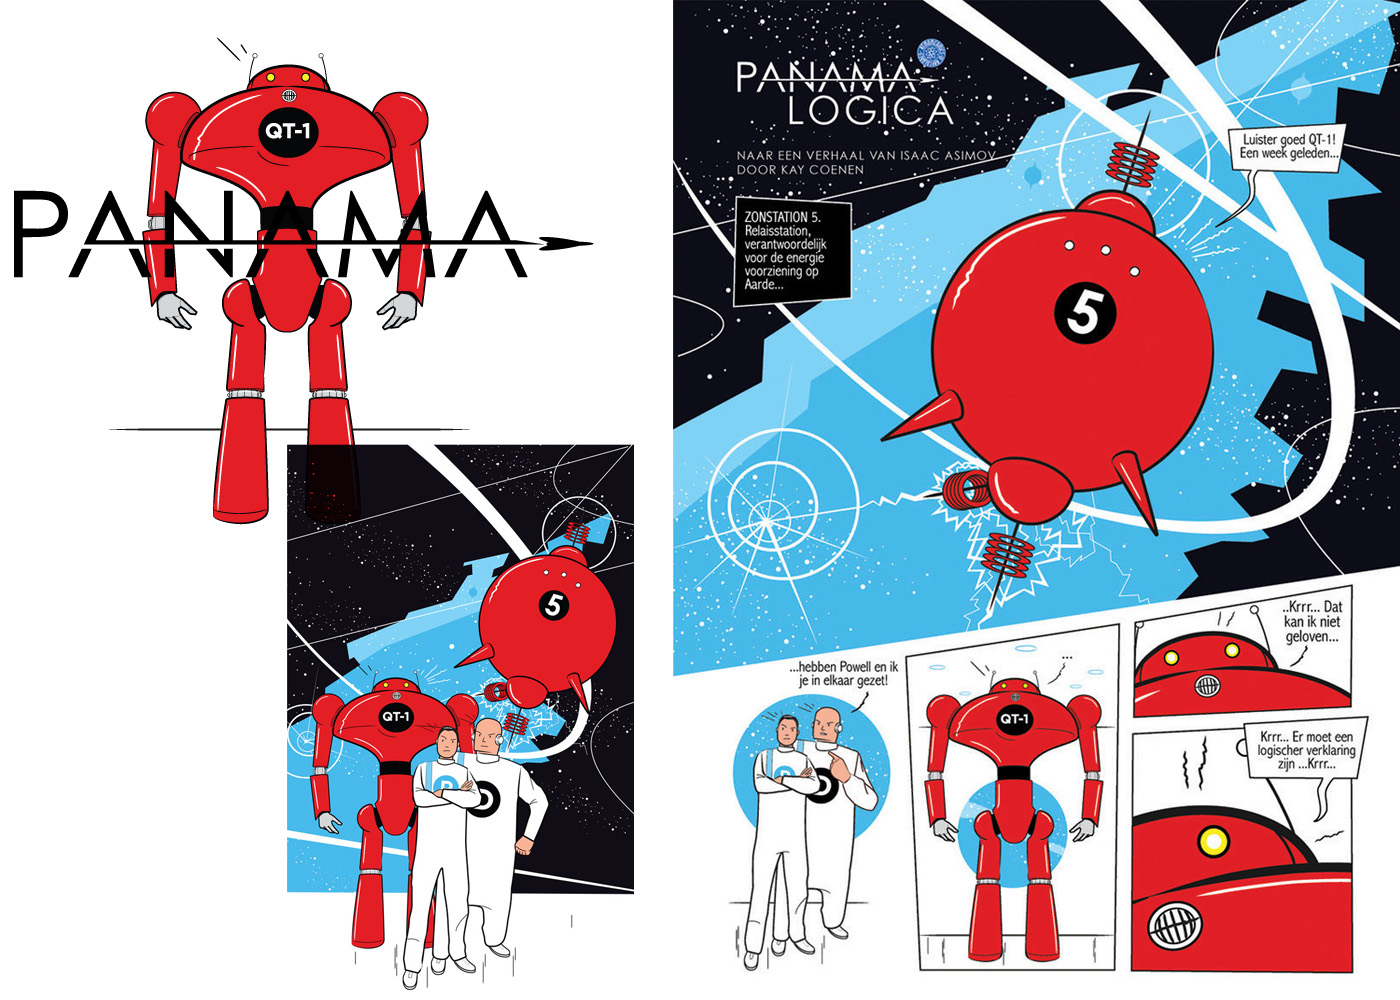 Infographic - PANAMA Comic